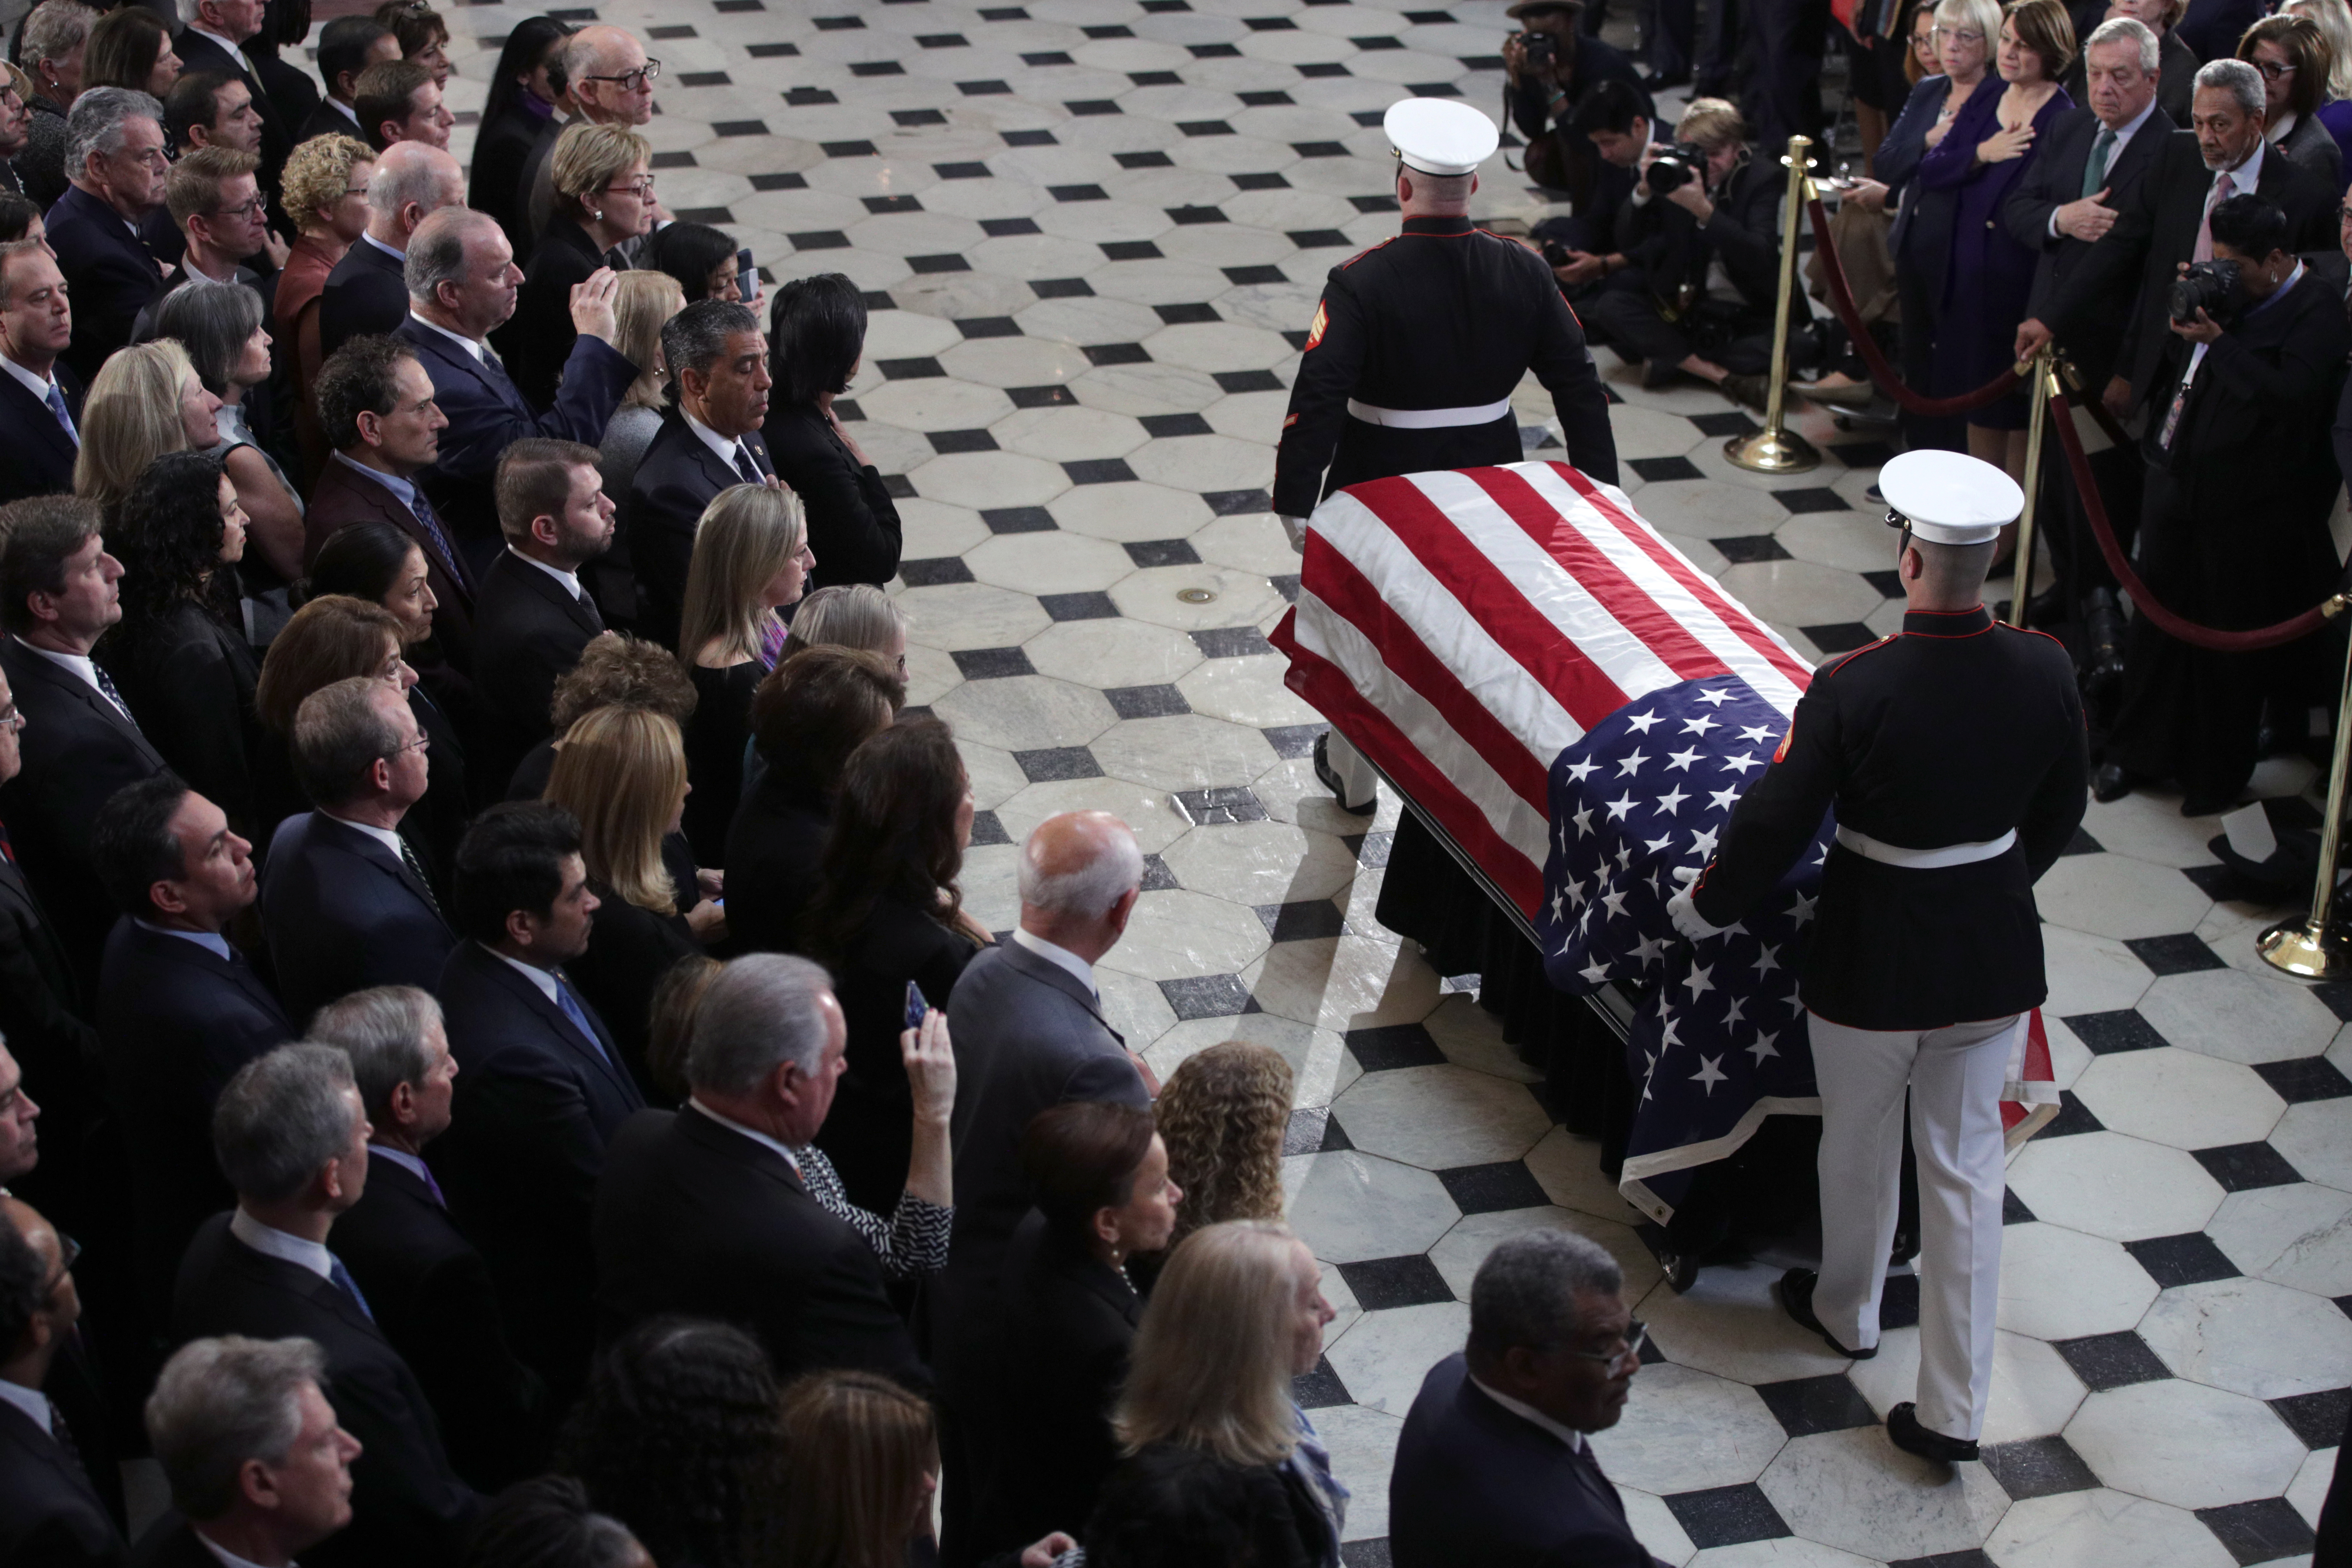 "*** POOL ***WASHINGTON, DC - OCTOBER 24: The flag-draped casket of U.S. Rep. Elijah Cummings (D-MD) is escorted by a honor guard during a memorial service at the Statuary Hall of the U.S. Capitol October 24, 2019 in Washington, DC. Rep. Cummings passed away on October 17, 2019 at the age of 68 from ""complications concerning longstanding health challenges."" (Photo by Alex Wong/Getty Images)"